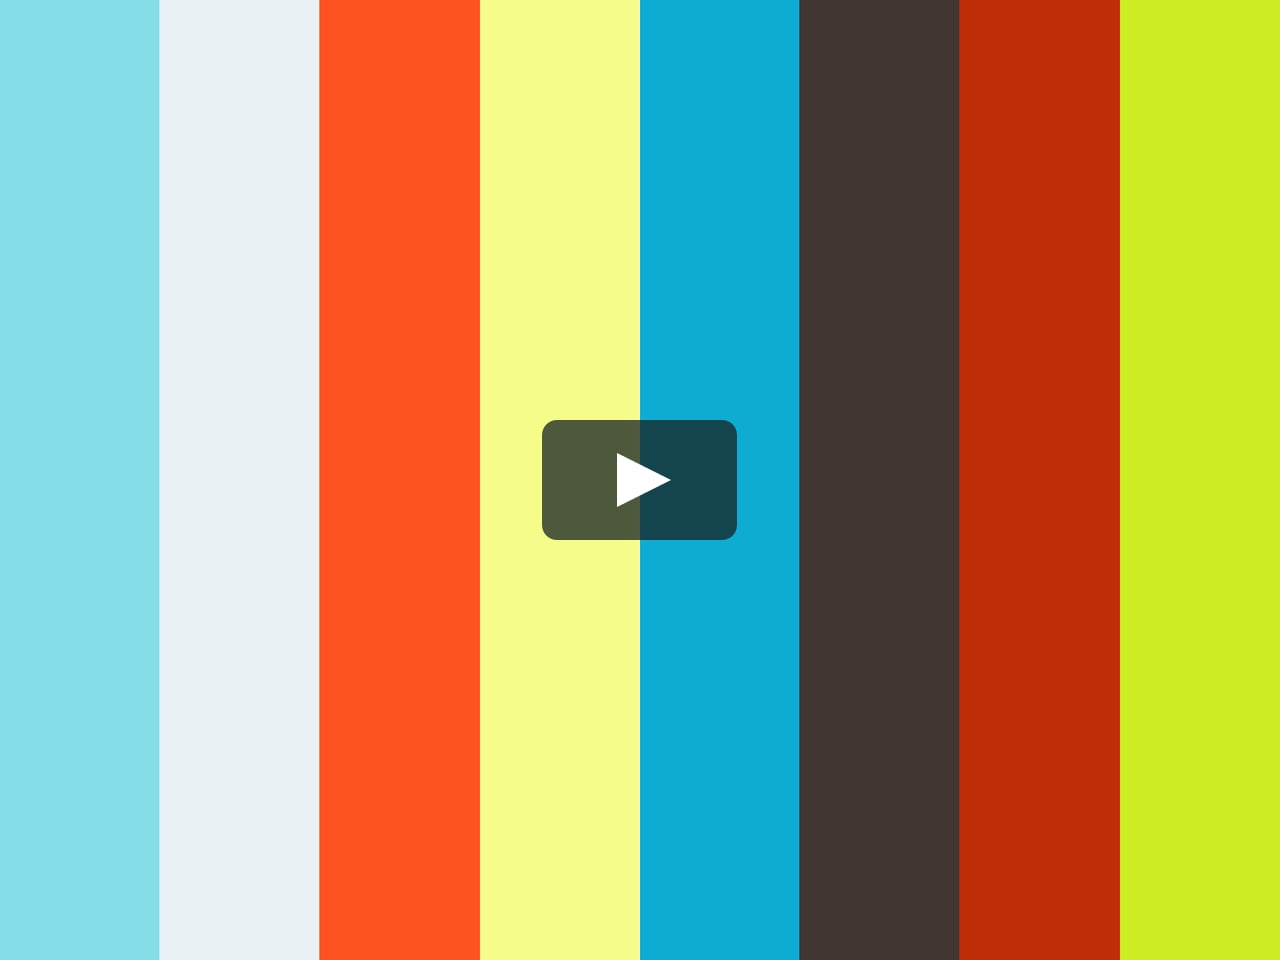 db floor press with crunch on Vimeo